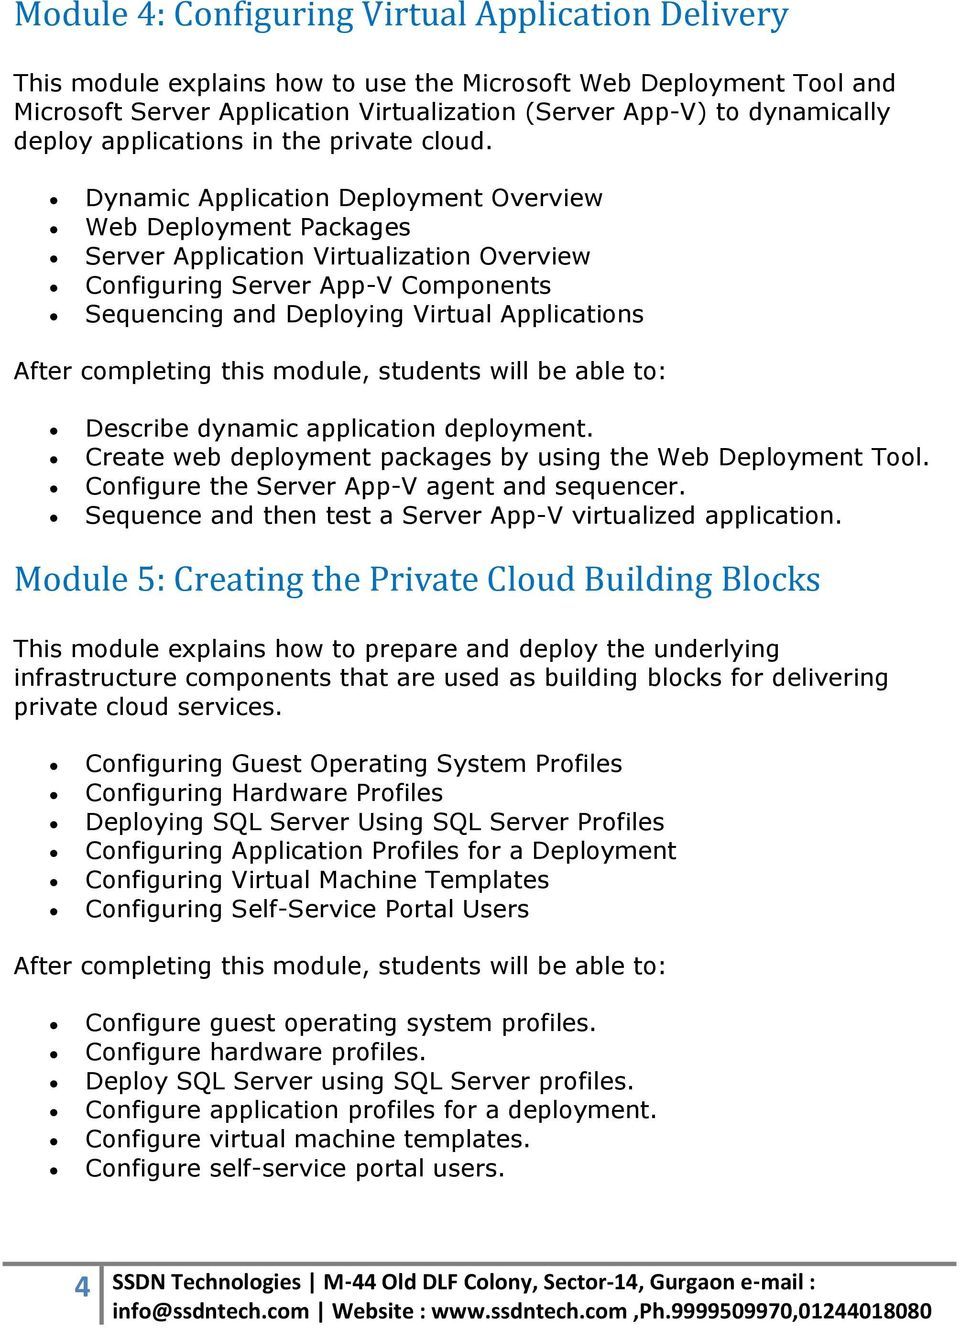 Dynamic Application Deployment Overview Web Deployment Packages Server Application Virtualization Overview Configuring Server App-V Components Sequencing and Deploying Virtual Applications Describe